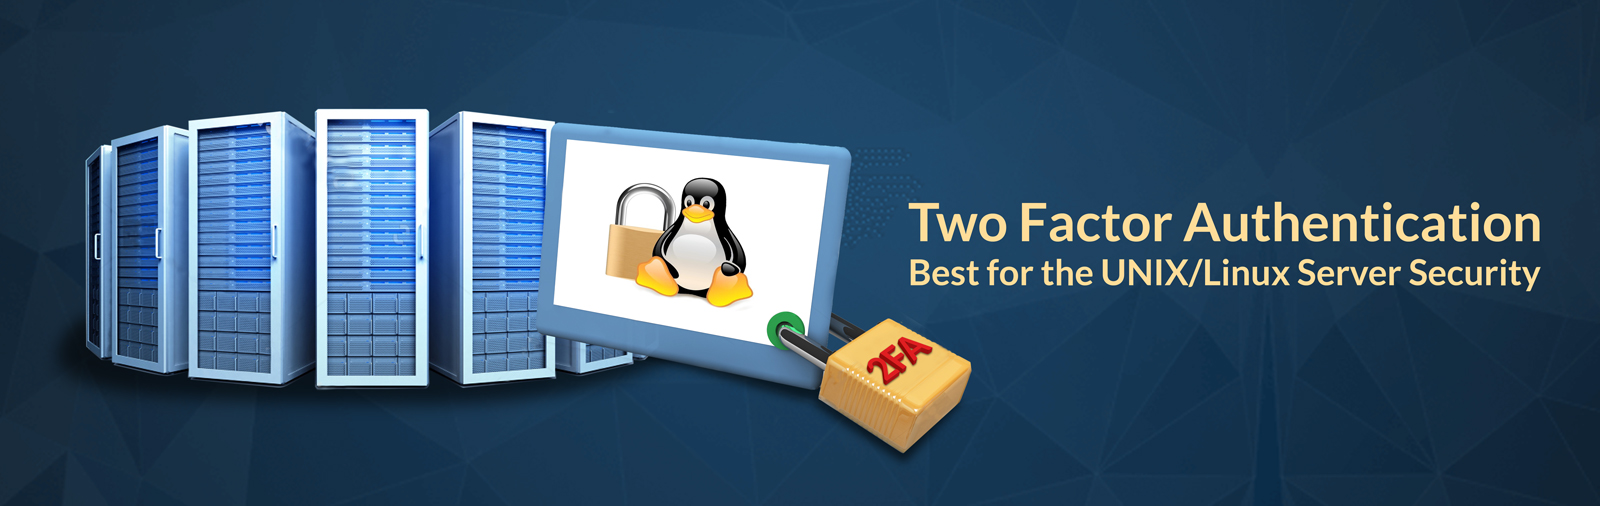 Two Factor Authentication – Best for the UNIX/Linux Server Security